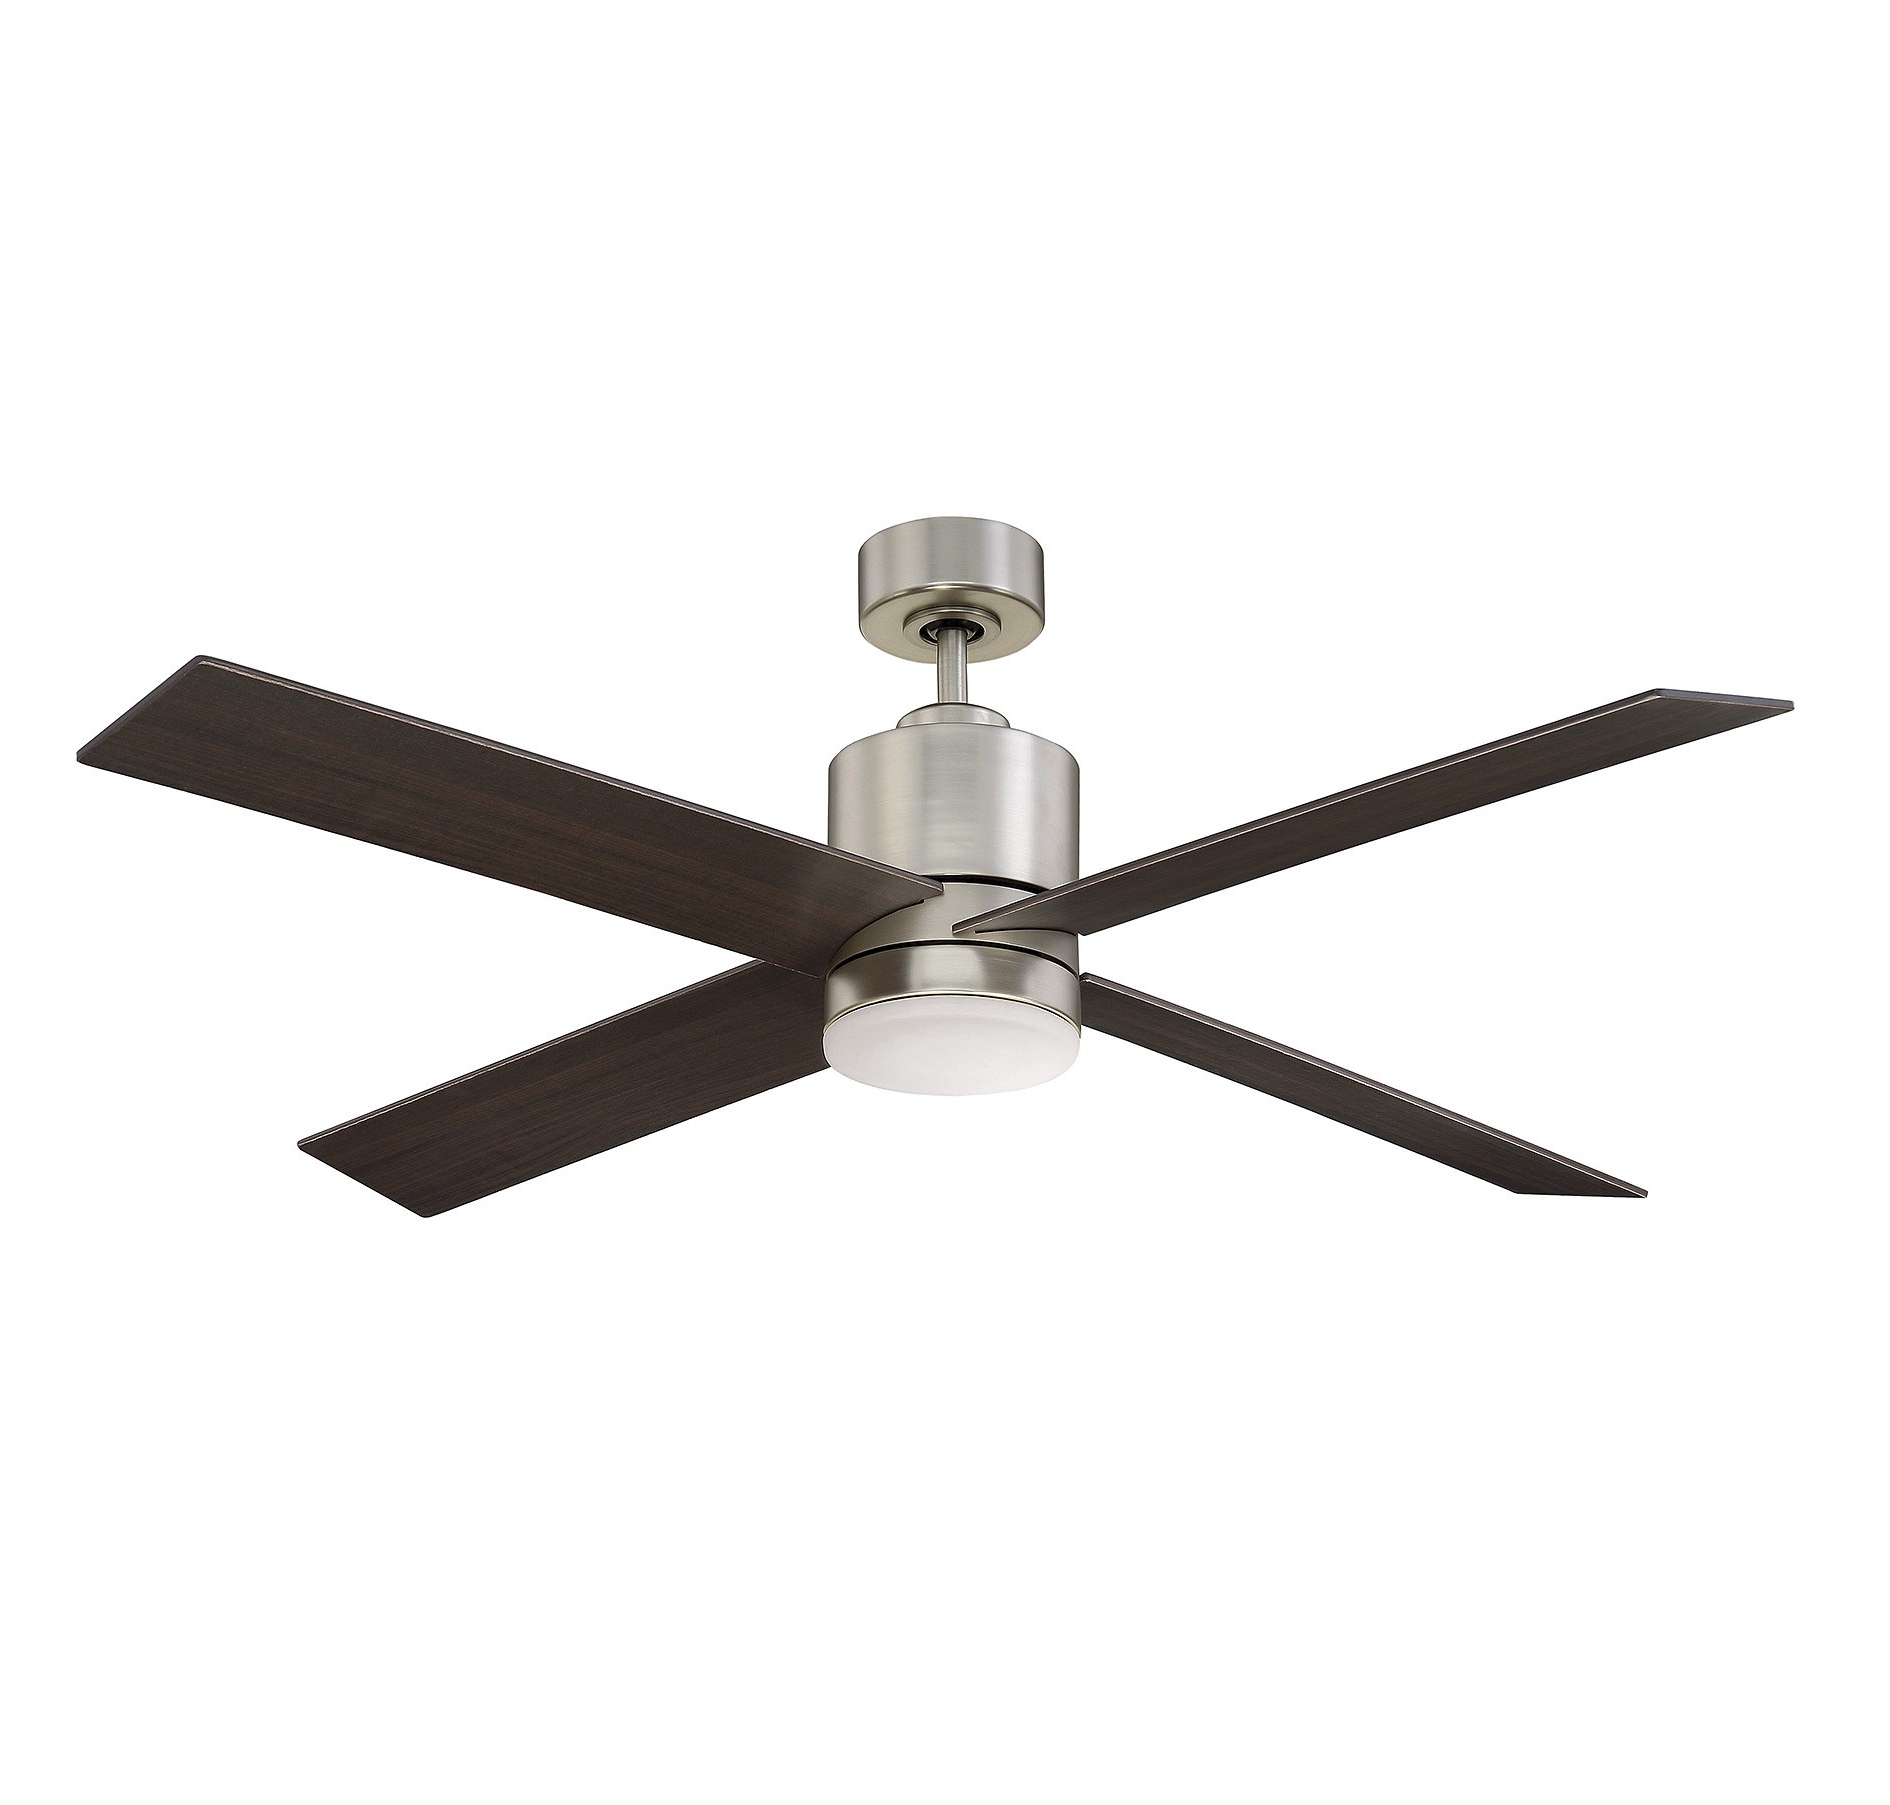 Trendy 52 6110 4Cn Sn Dayton 52 Inch 4 Blade Ceiling Fansavoy House Pertaining To Coastal Outdoor Ceiling Fans (View 17 of 20)